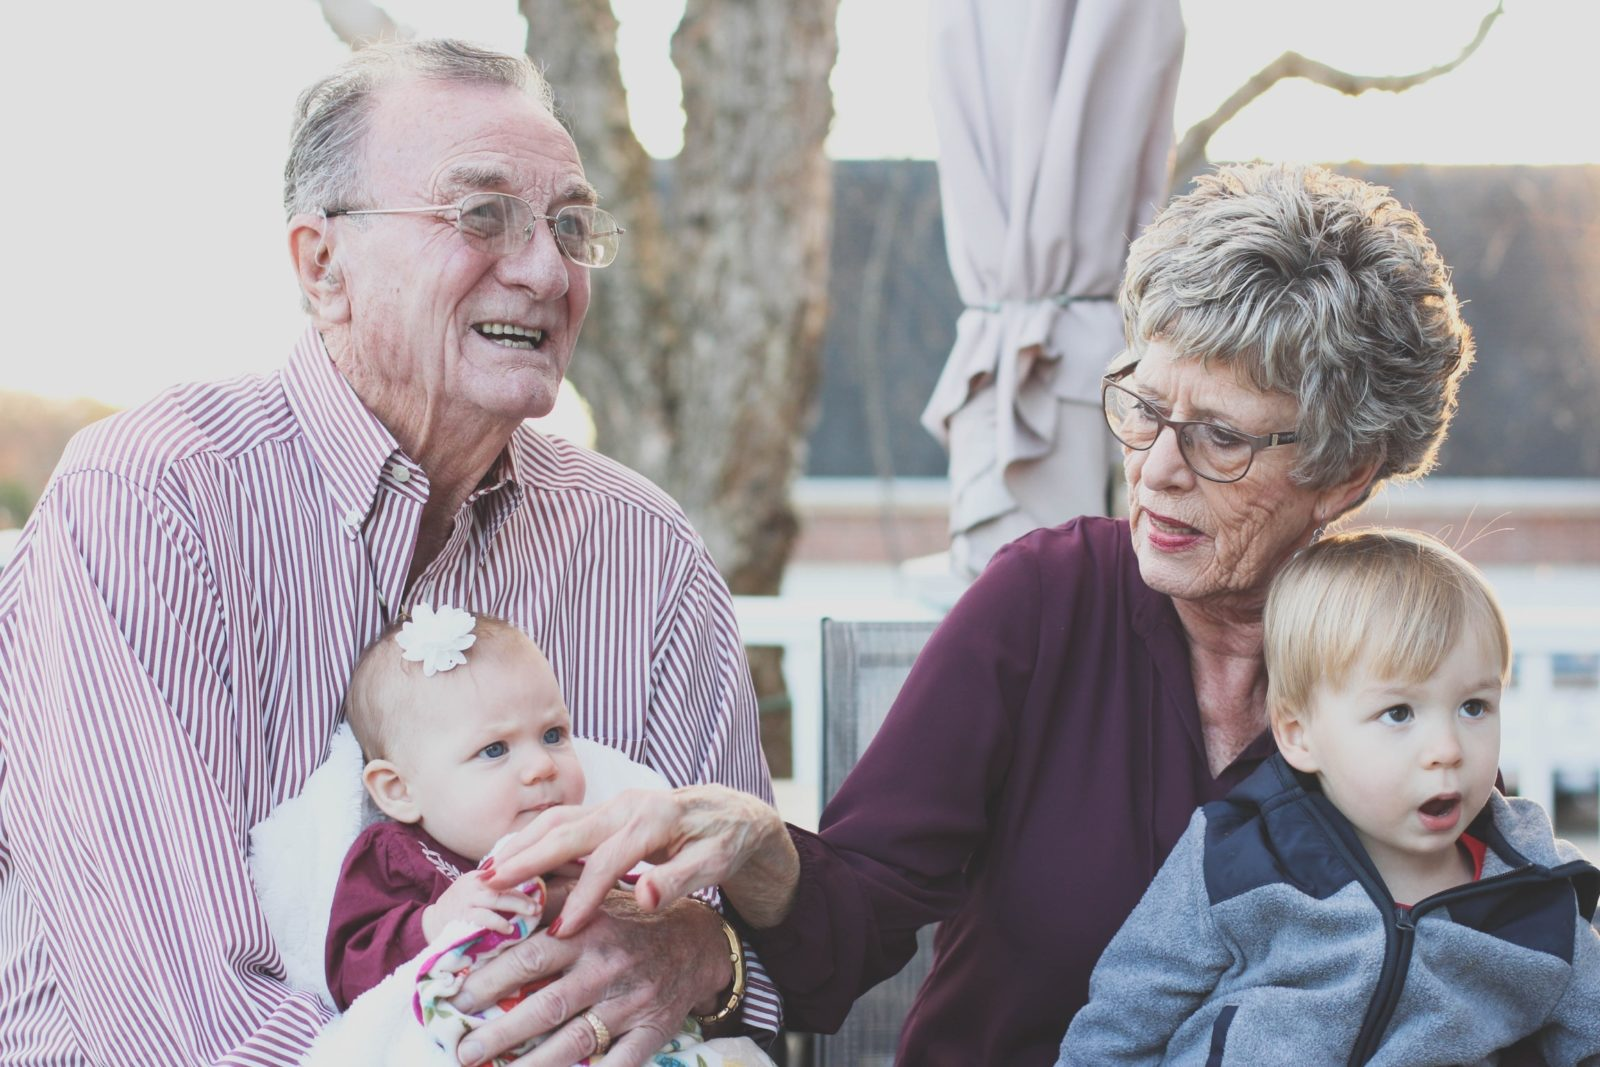 Web Marketing For Senior Care Providers And Facilities On FoundLocally